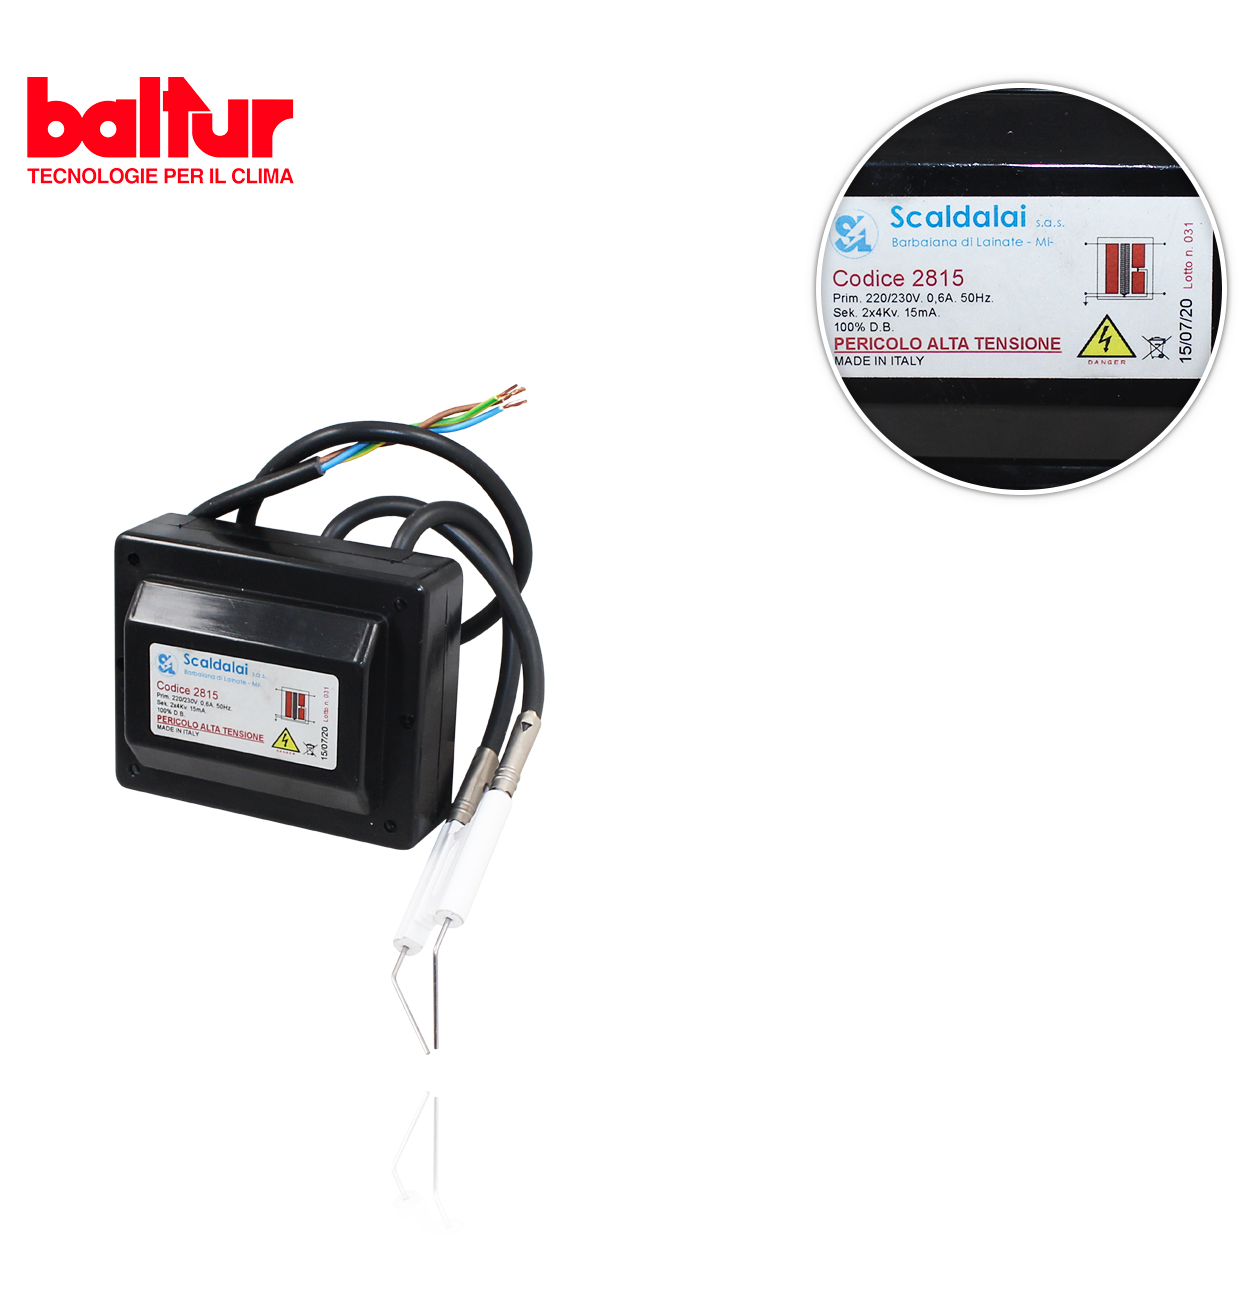 TRANSFORMADOR RE 8KV 20MA 230V/50Hz. BALTUR 50034